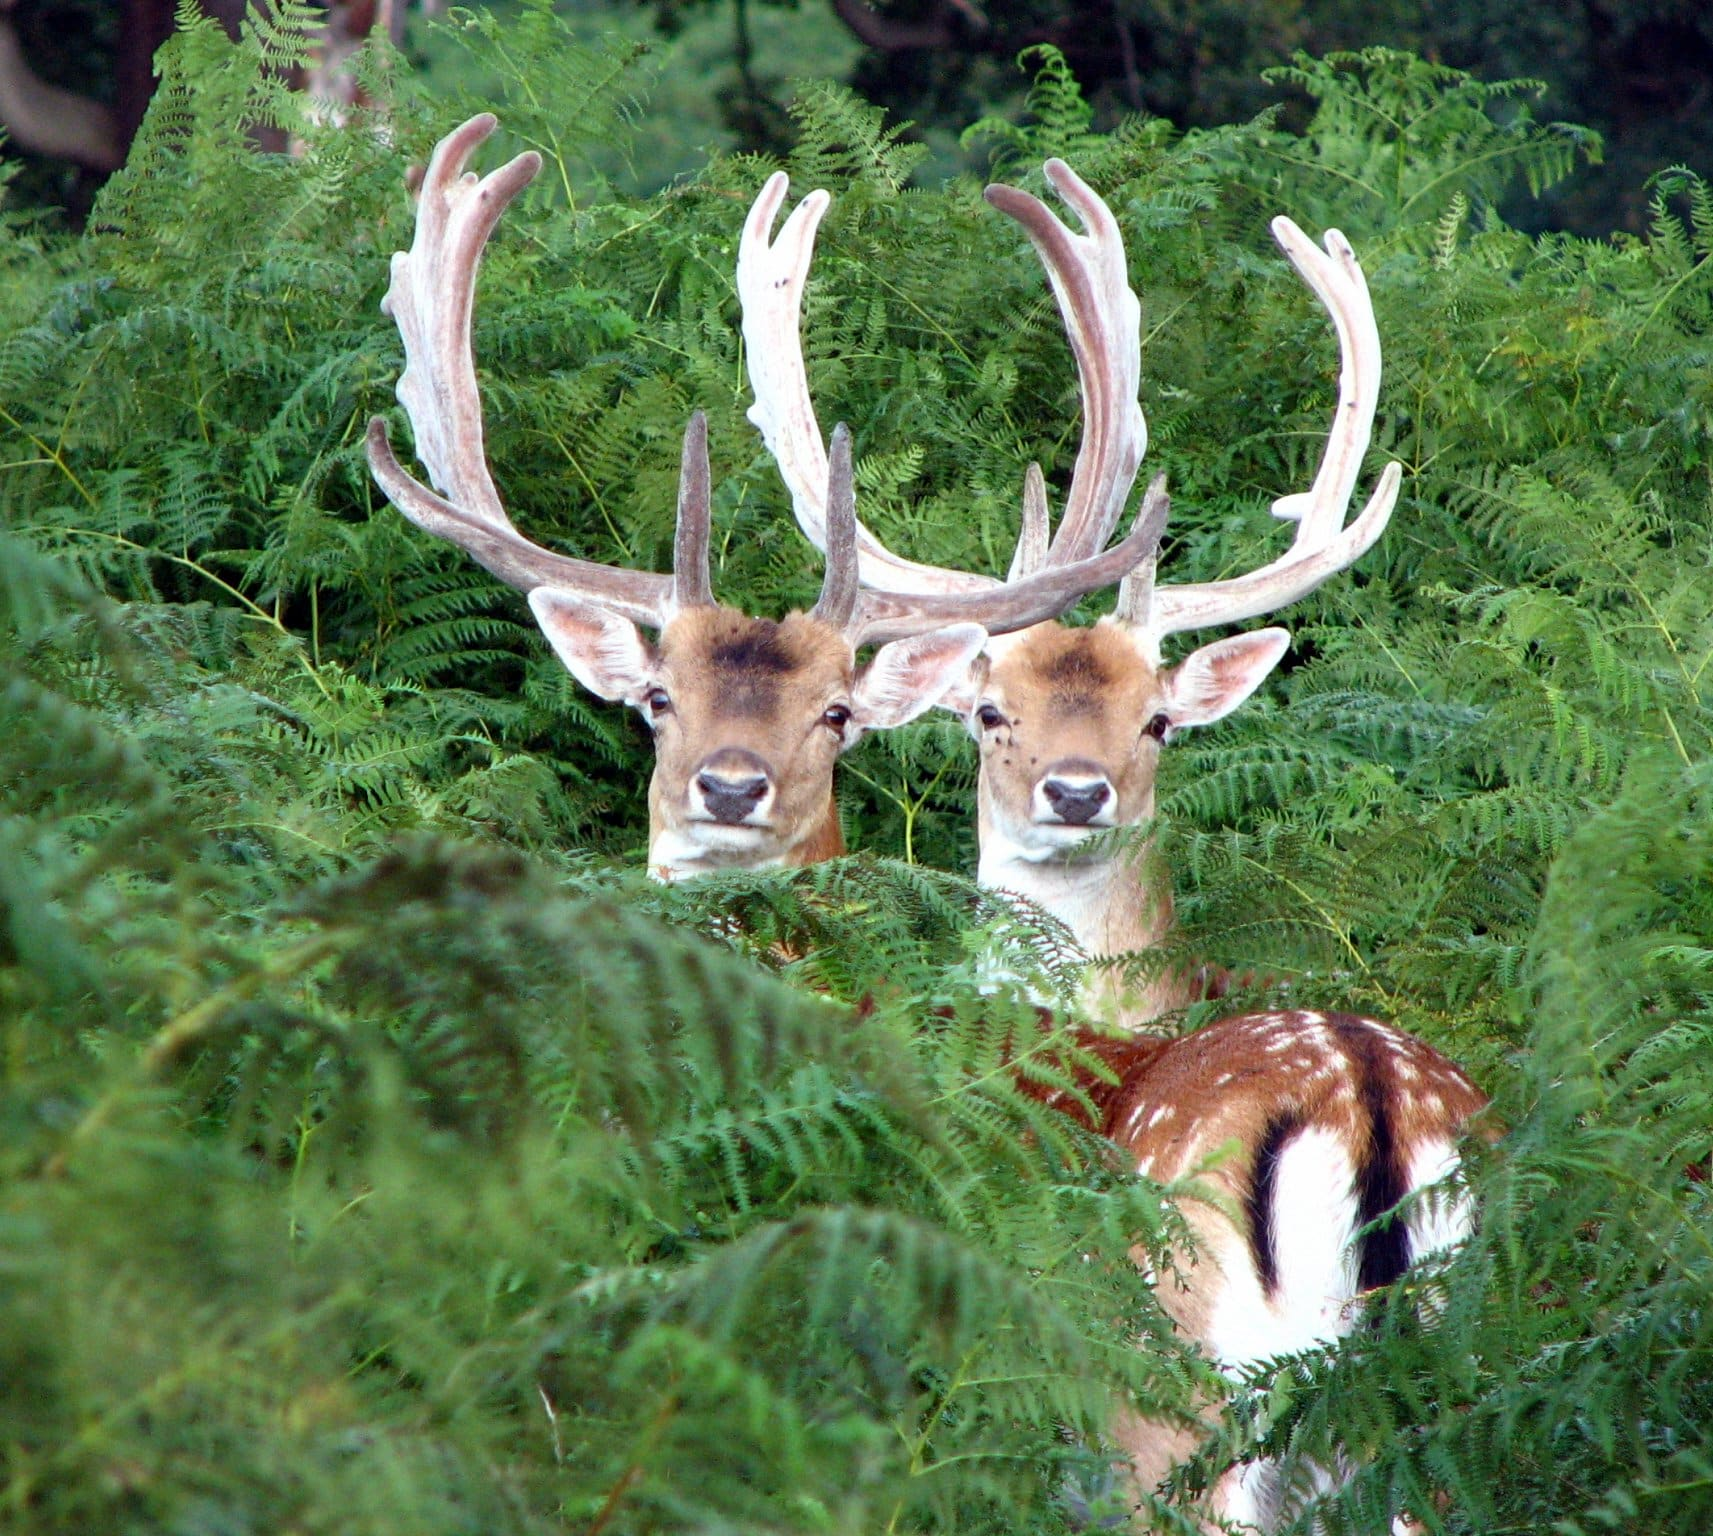 Yes, we have wild red deer in London - making Richmond Park one of the best places to go in London